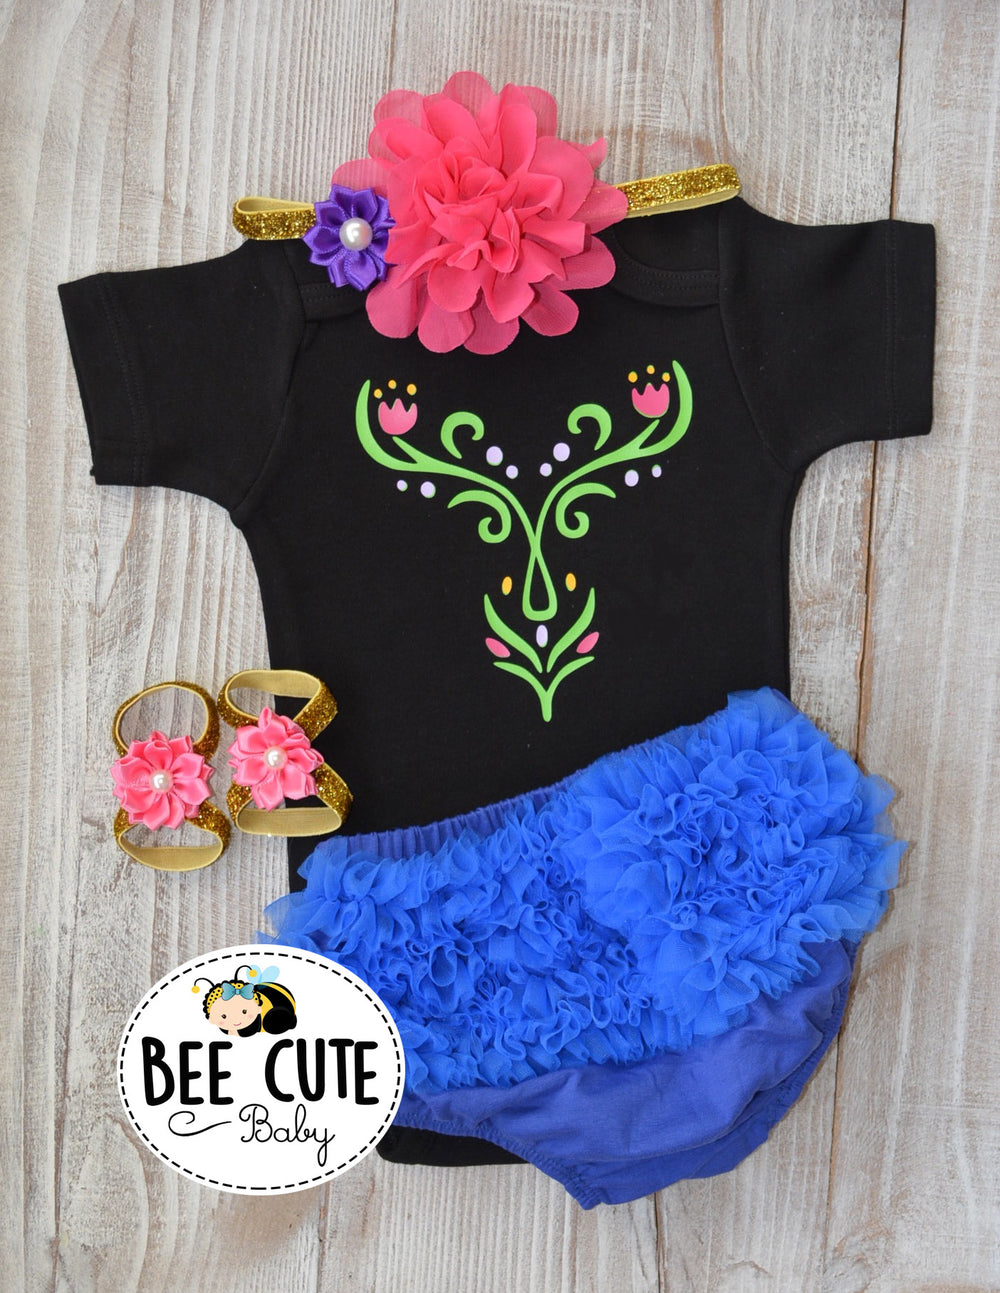 Princess Anna Baby Costume - beecutebaby